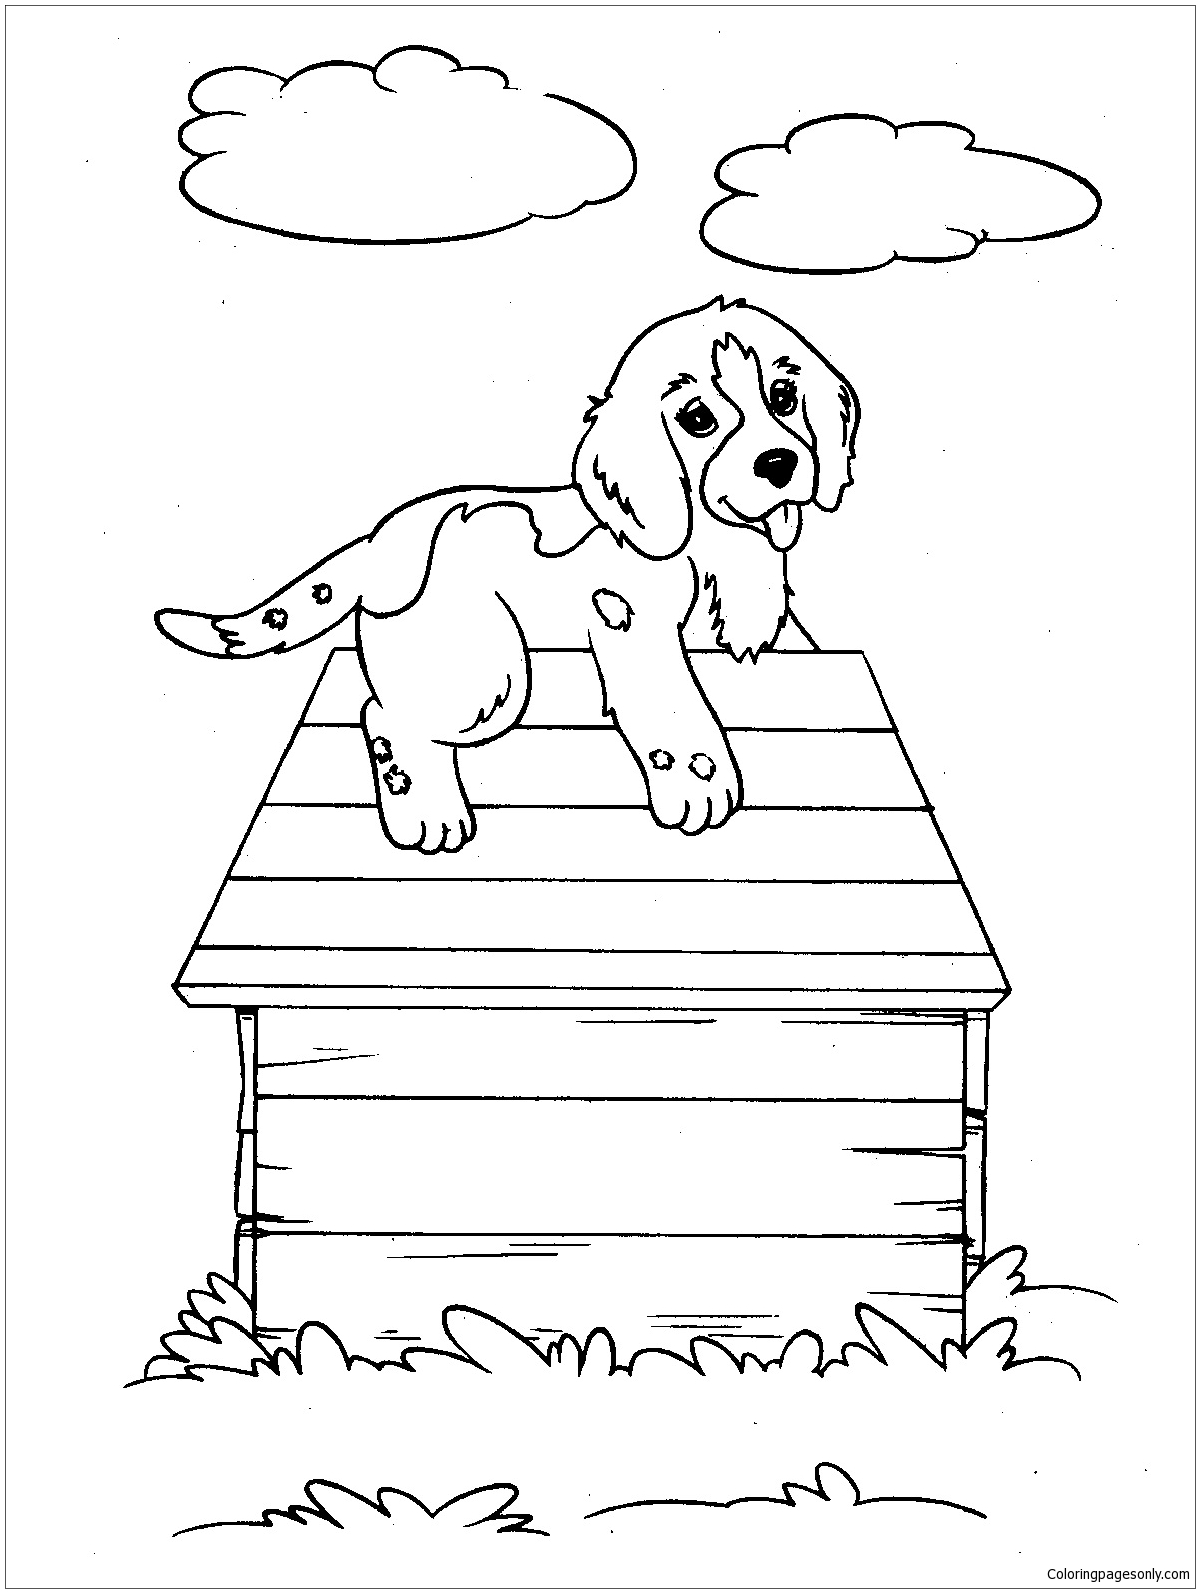 New Puppy Dog Coloring Page Free Coloring Pages Online